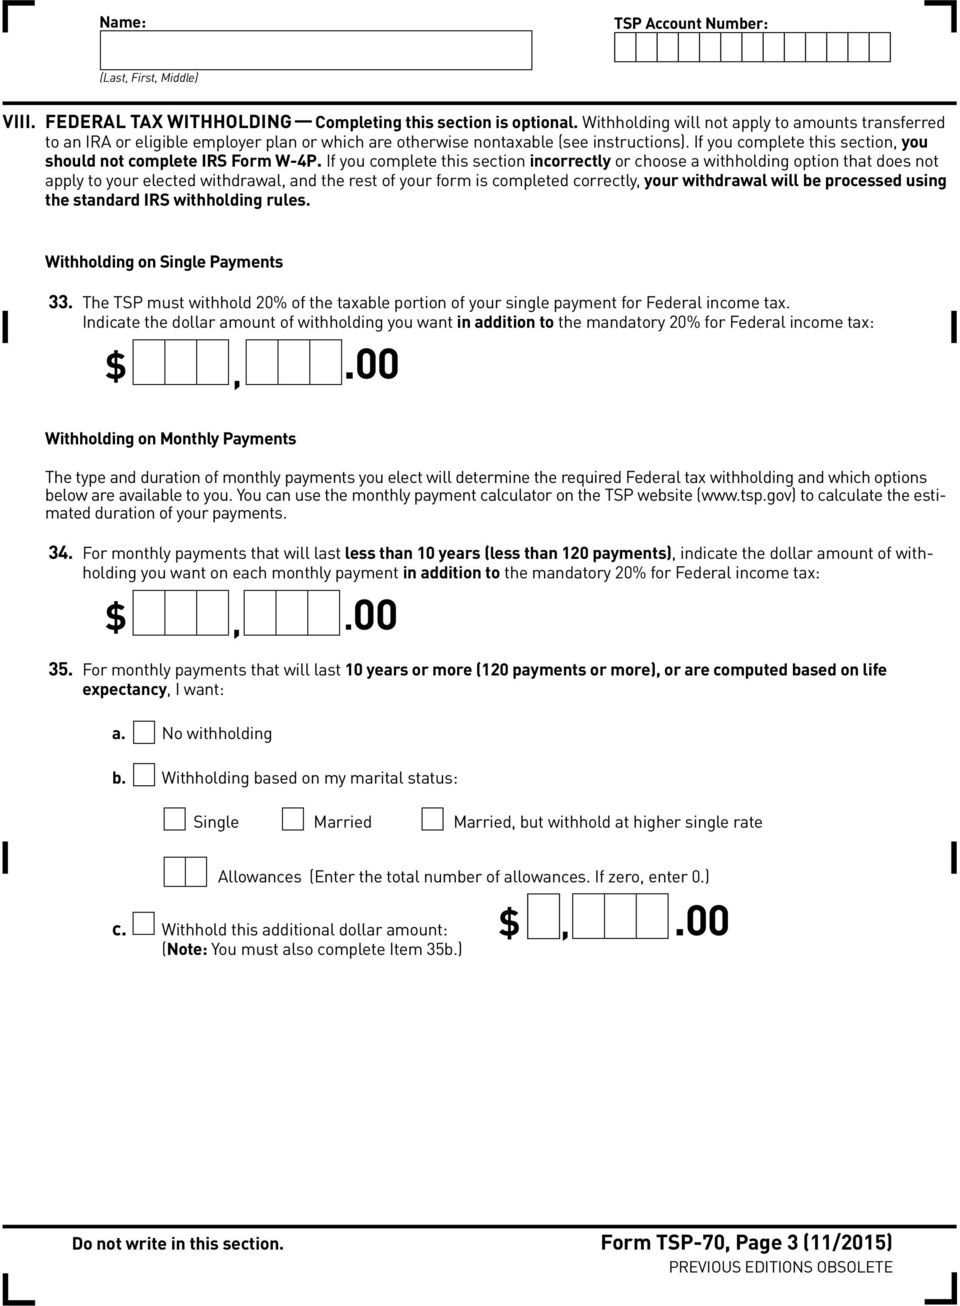 If you complete this section, you should not complete IRS Form W-4P.